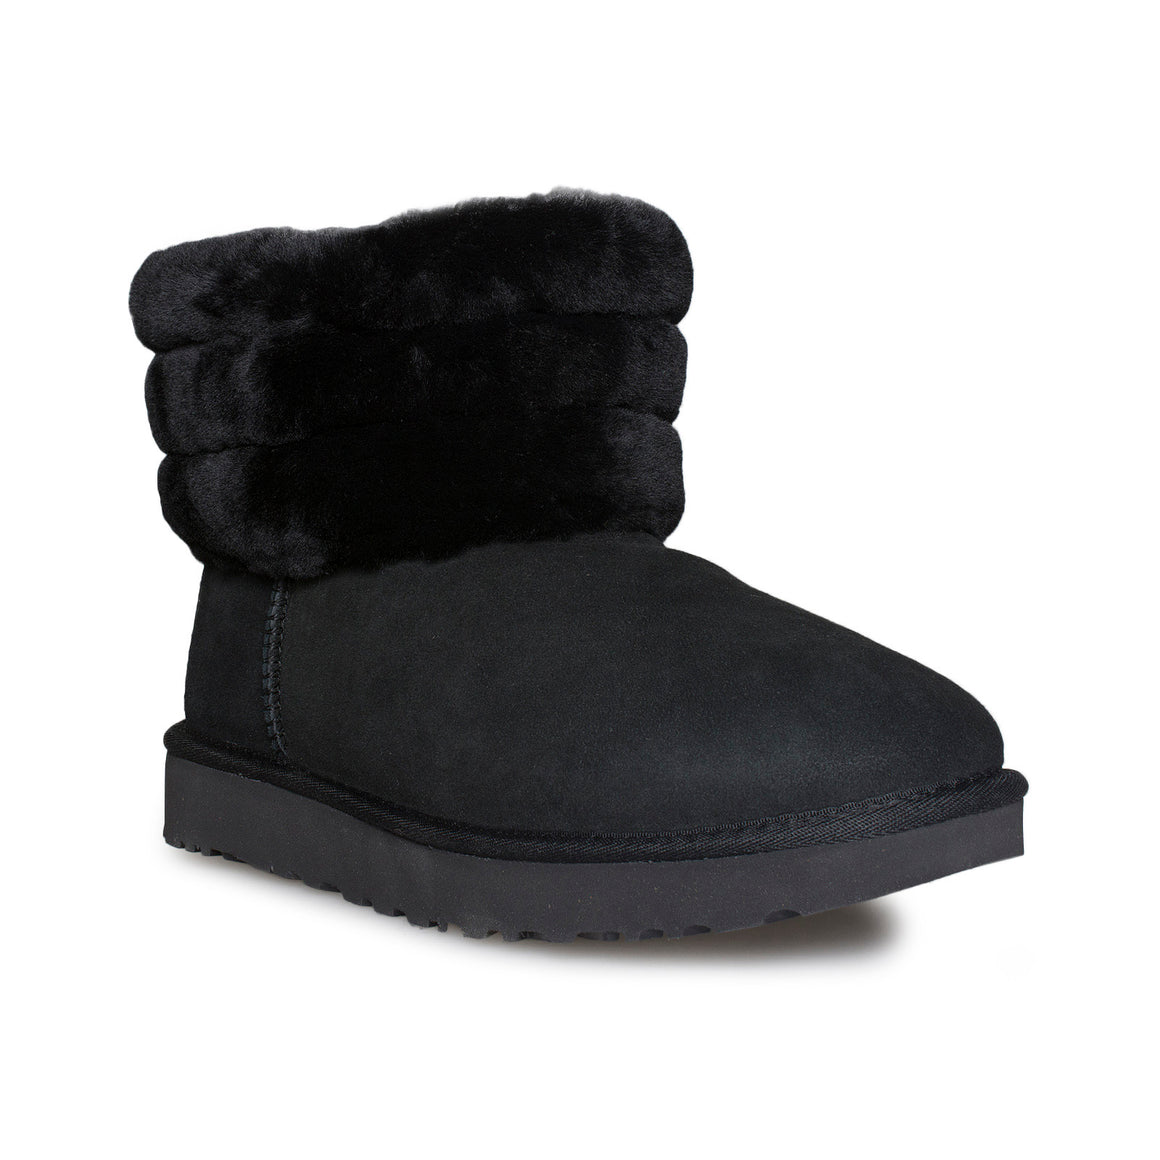 UGG Fluff Mini Quilted Black Boots - Women's